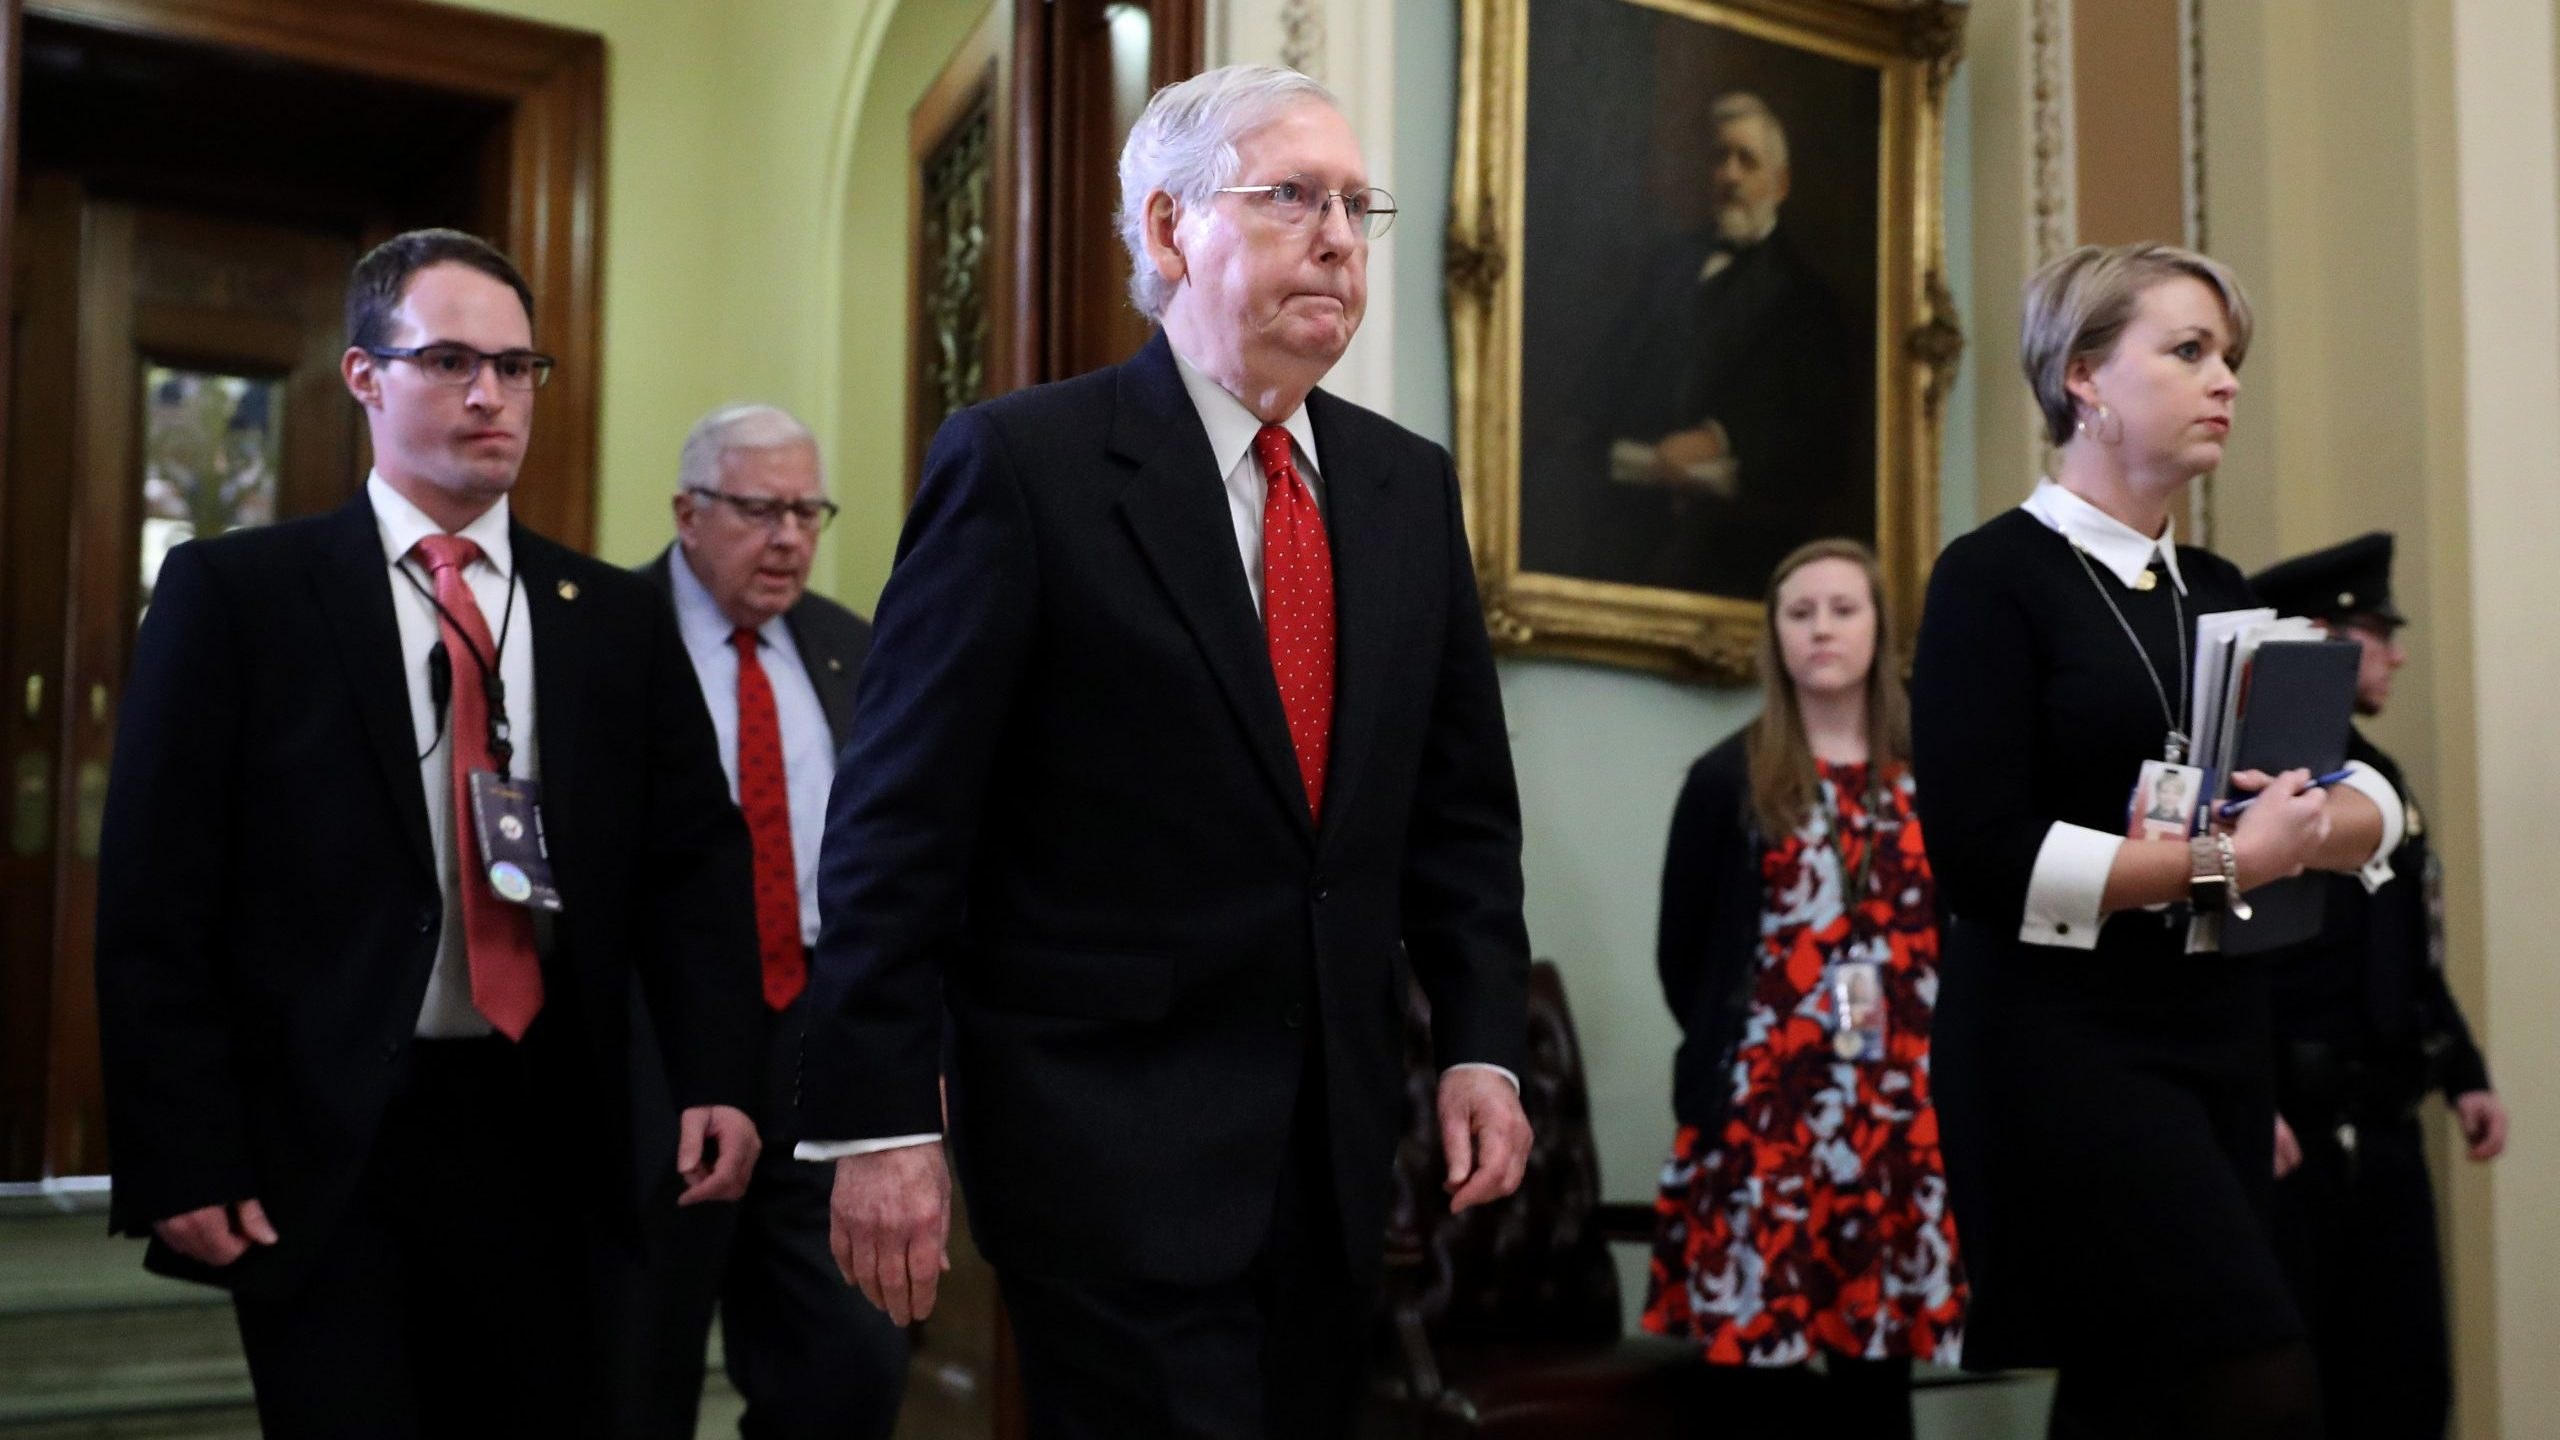 Senate Majority Leader Mitch McConnell leaves the Senate Chamber during a recess in President Donald Trump's impeachment trial on Jan. 21, 2020. (Credit: Chip Somodevilla / Getty Images)